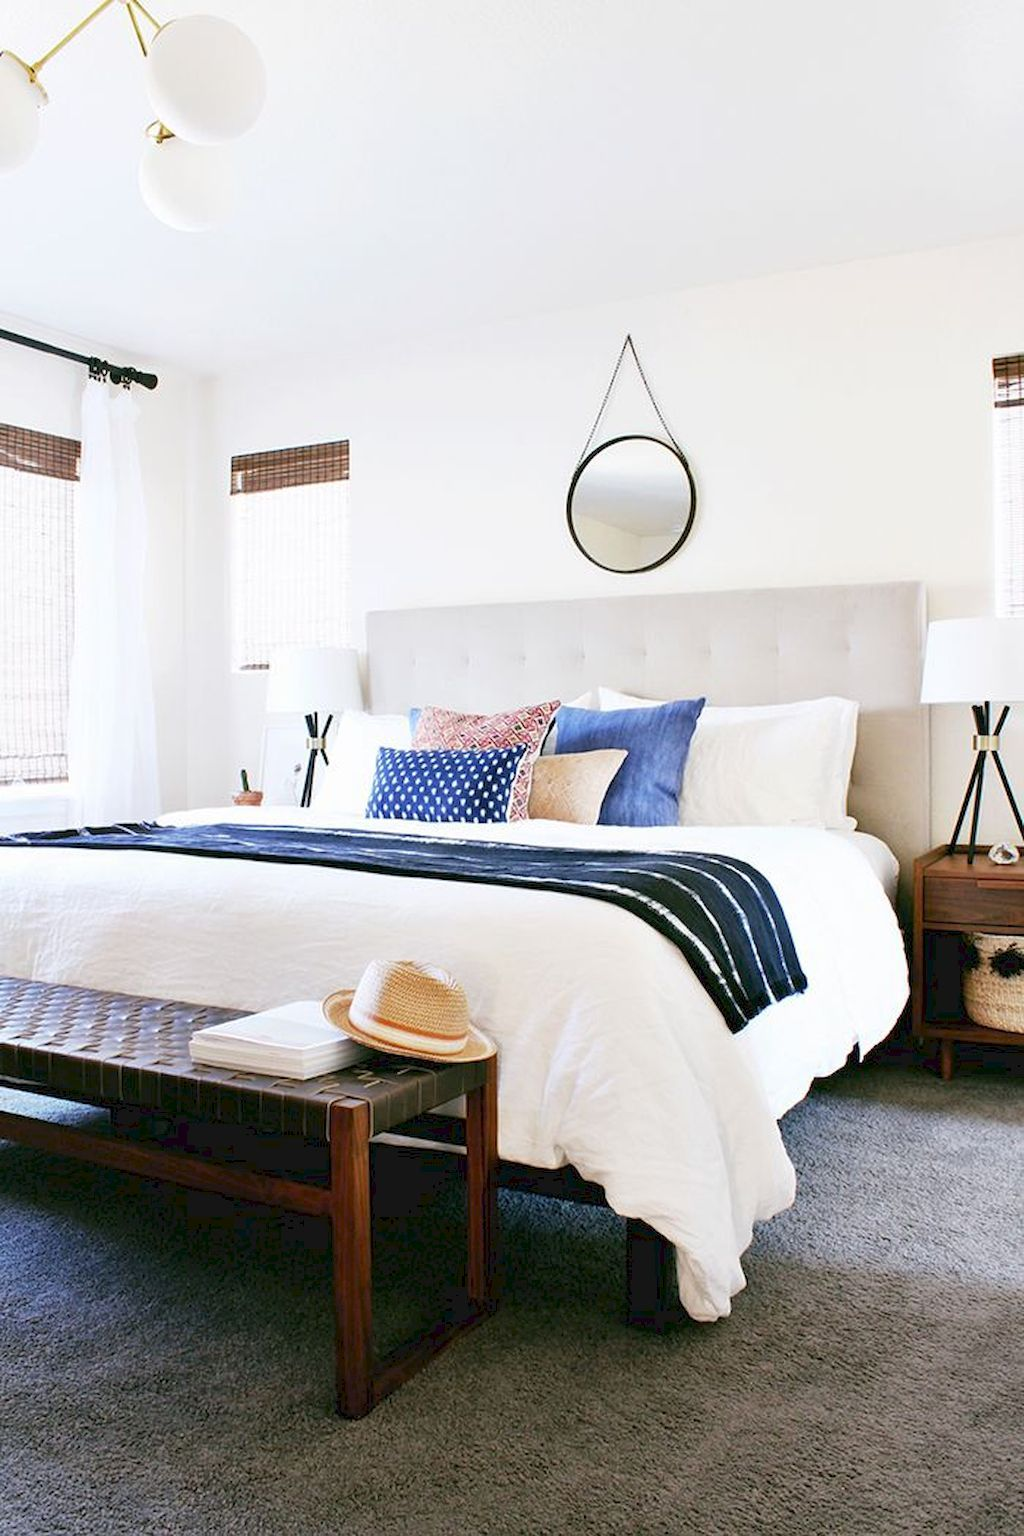 60 Cool Eclectic Master Bedroom Decor Ideas And Remodel | Pinterest Master Bedroom Decorating Ideas Eclectic on eclectic bedroom furniture, superhero boys bedroom decorating ideas, eclectic kitchen decorating ideas, eclectic interior decorating ideas, eclectic teen bedroom, eclectic master bathroom, eclectic backyard decorating ideas, eclectic den decorating ideas,